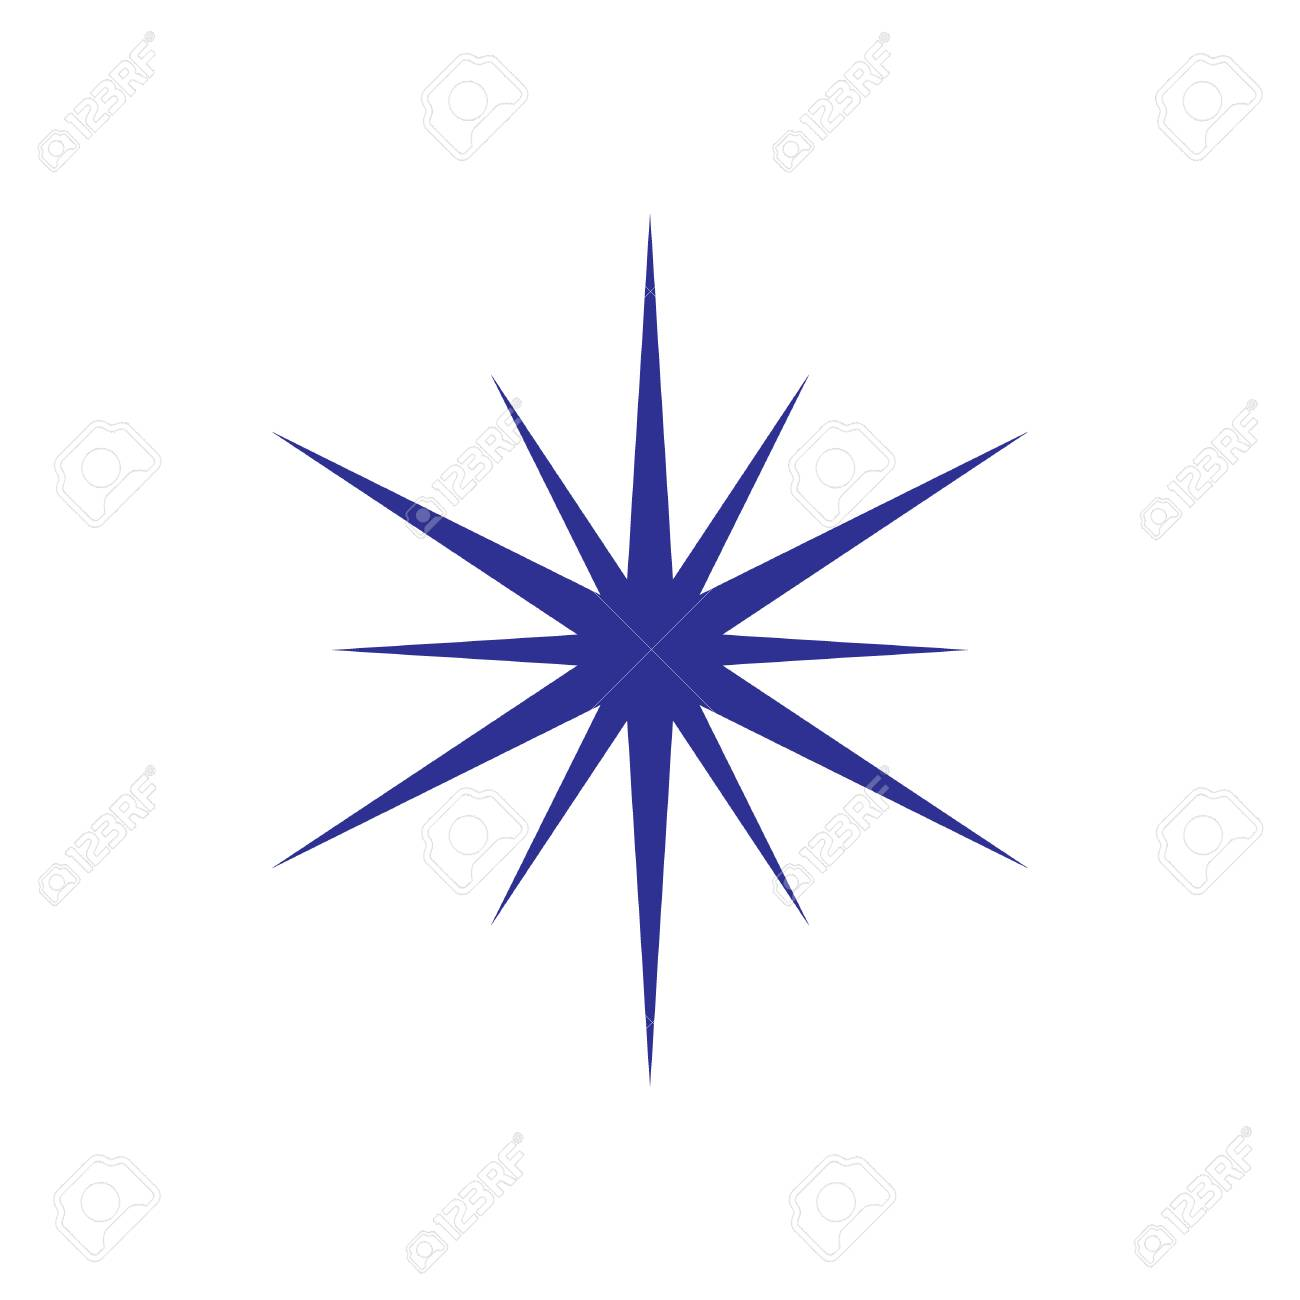 Simple Star Compass Needle Element Design On The White Background 1300x1300